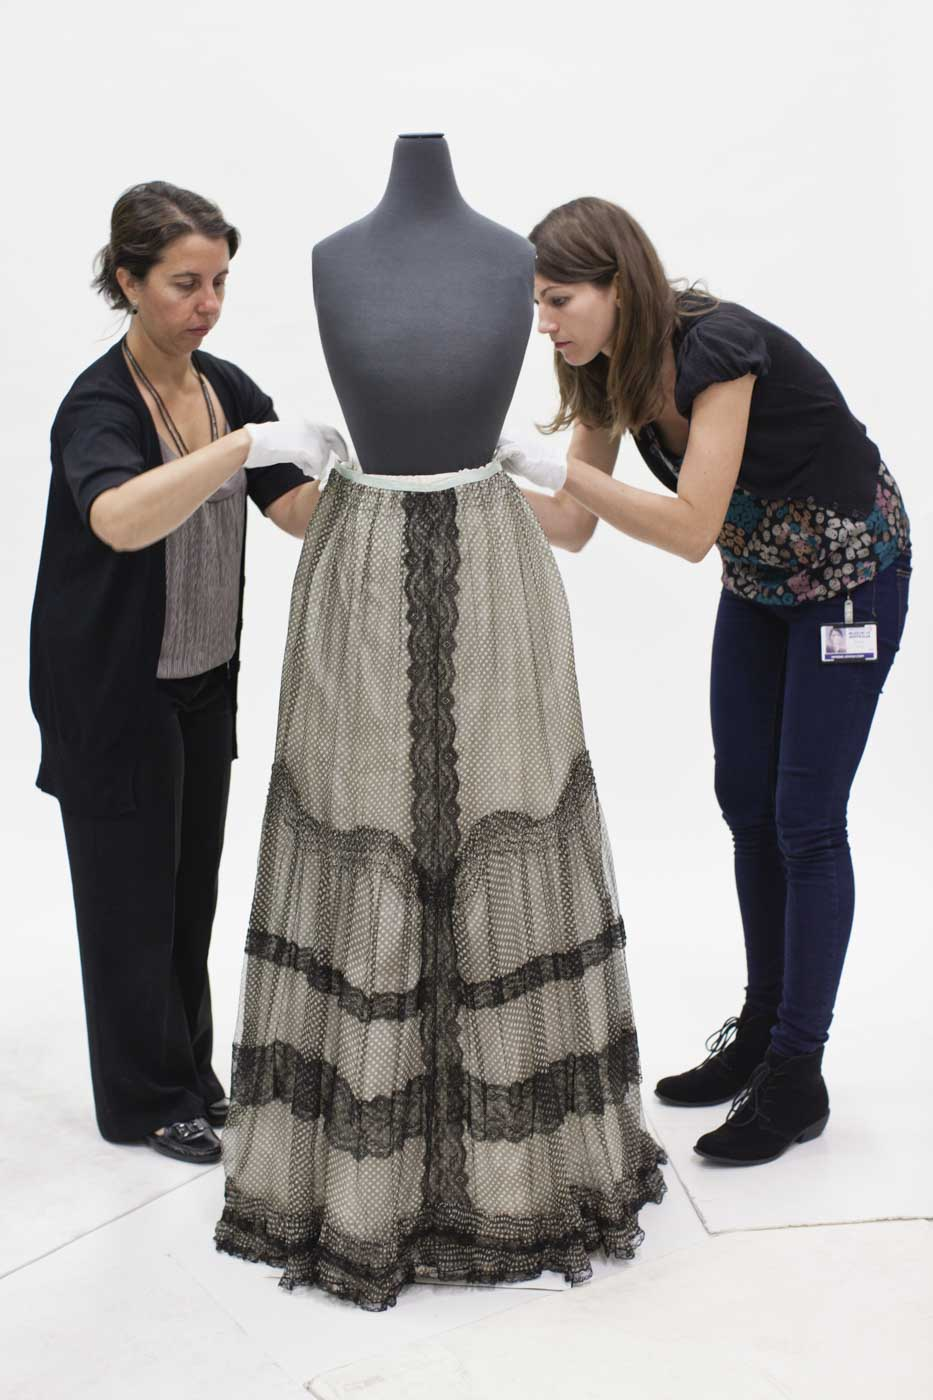 Two conservators adjust a skirt on a mannequin. - click to view larger image